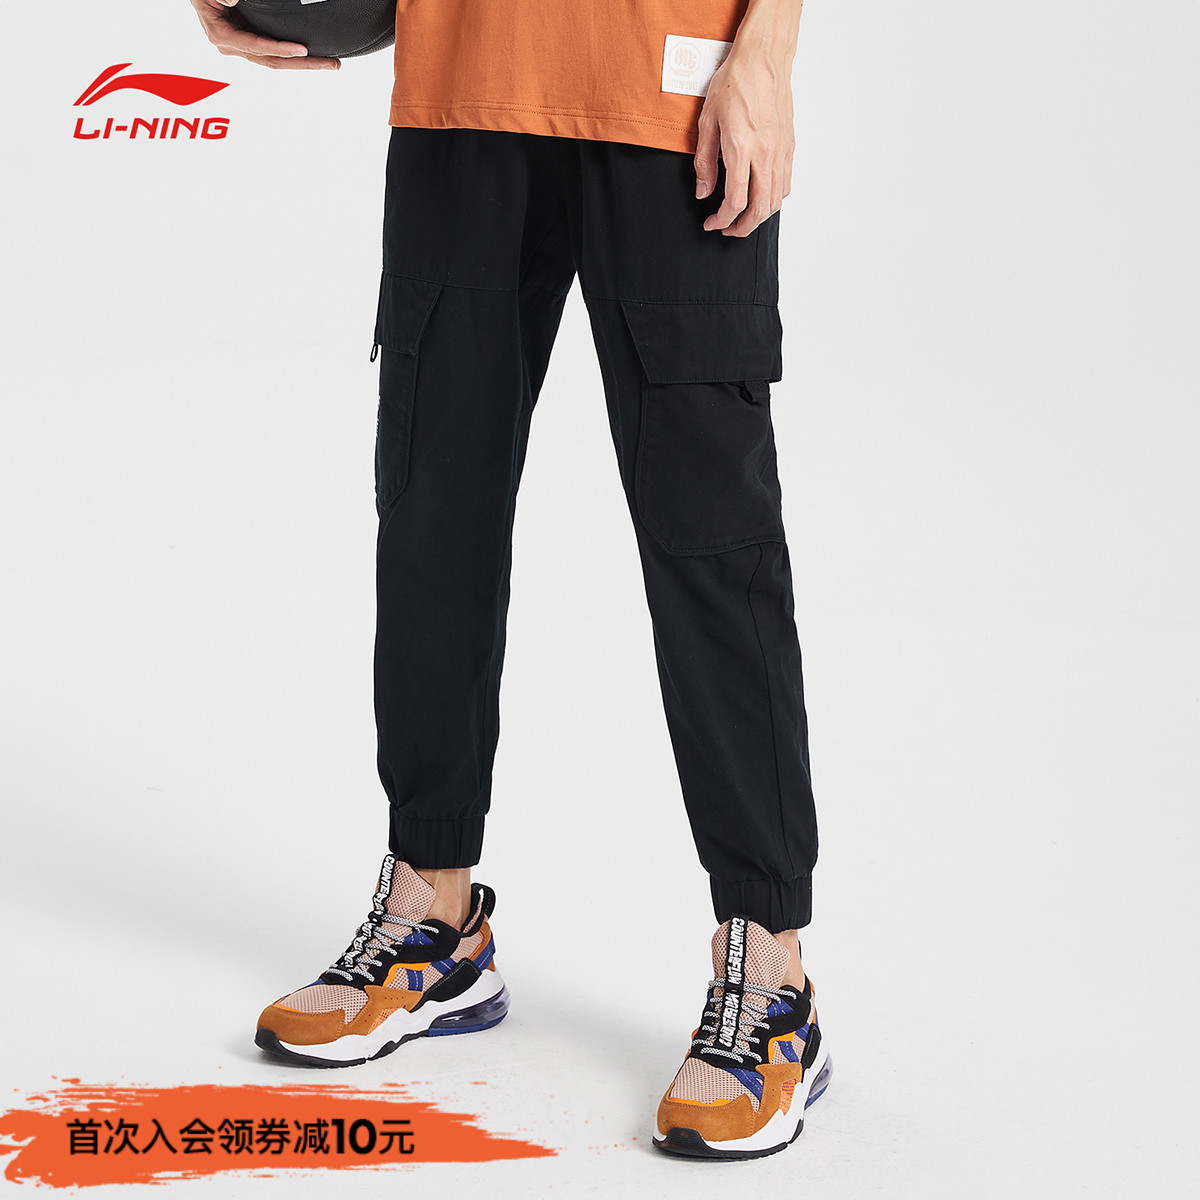 Li Ning casual pants men's new Badfive basketball series spring closing cotton shuttle weave sports trousers